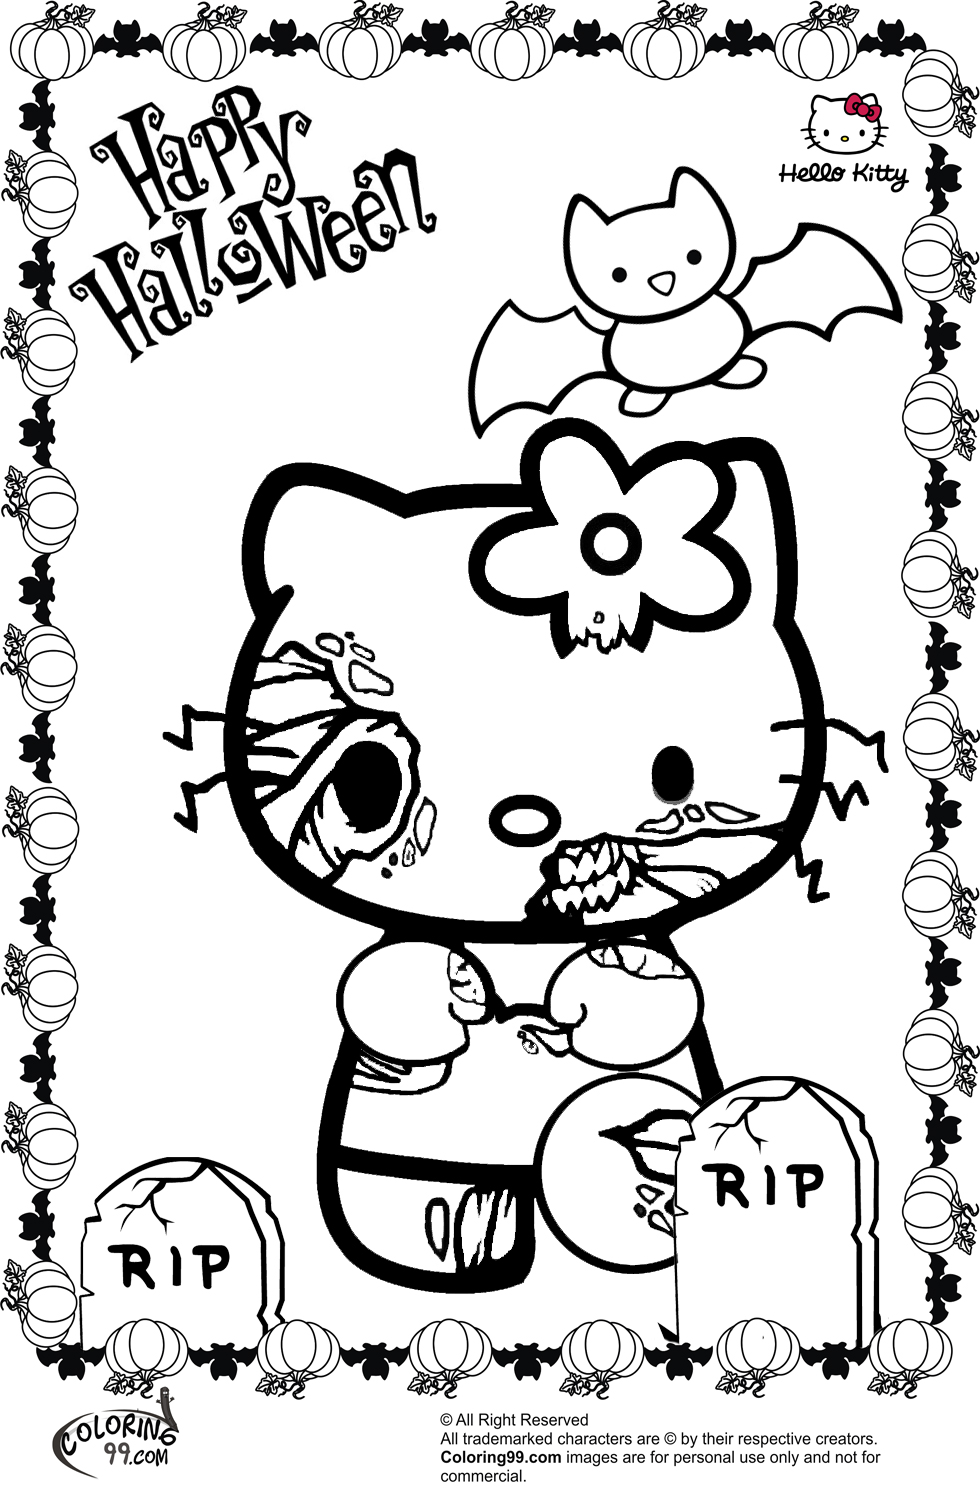 disney channel zombies coloring pages zombie coloring pages for adults and teens halloween zombies channel coloring disney pages